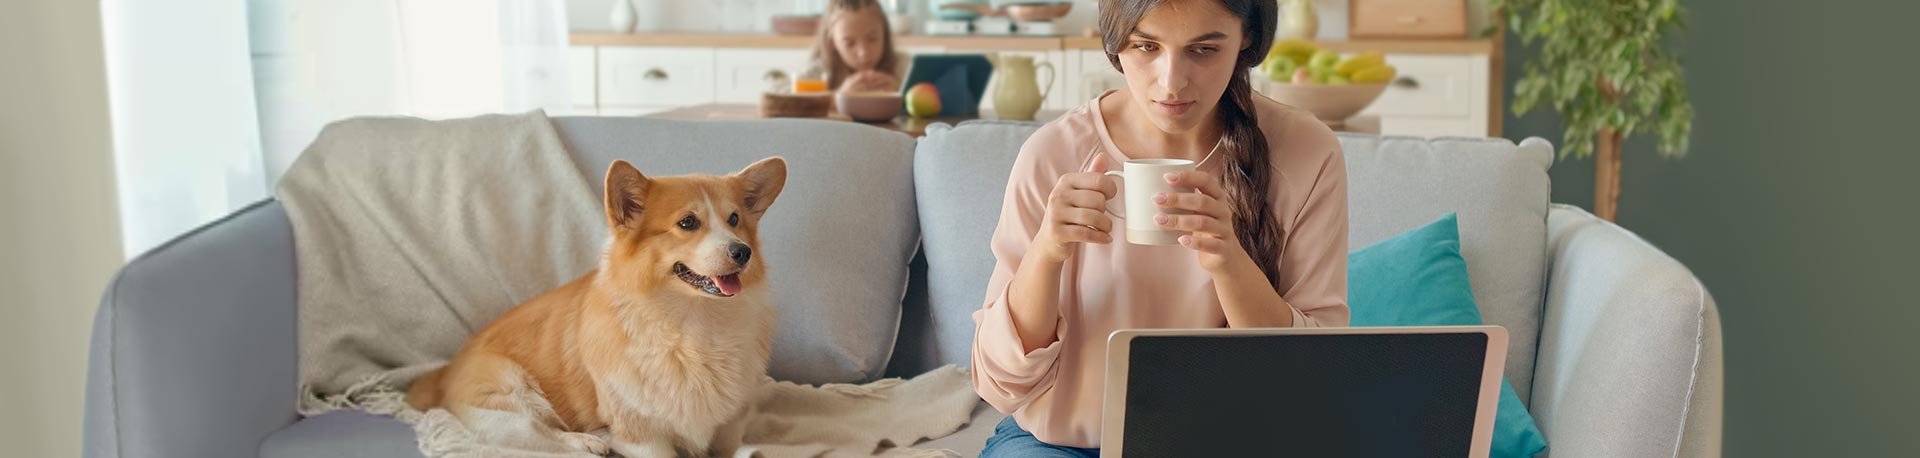 Woman looking out the window and thinking about her professional future.